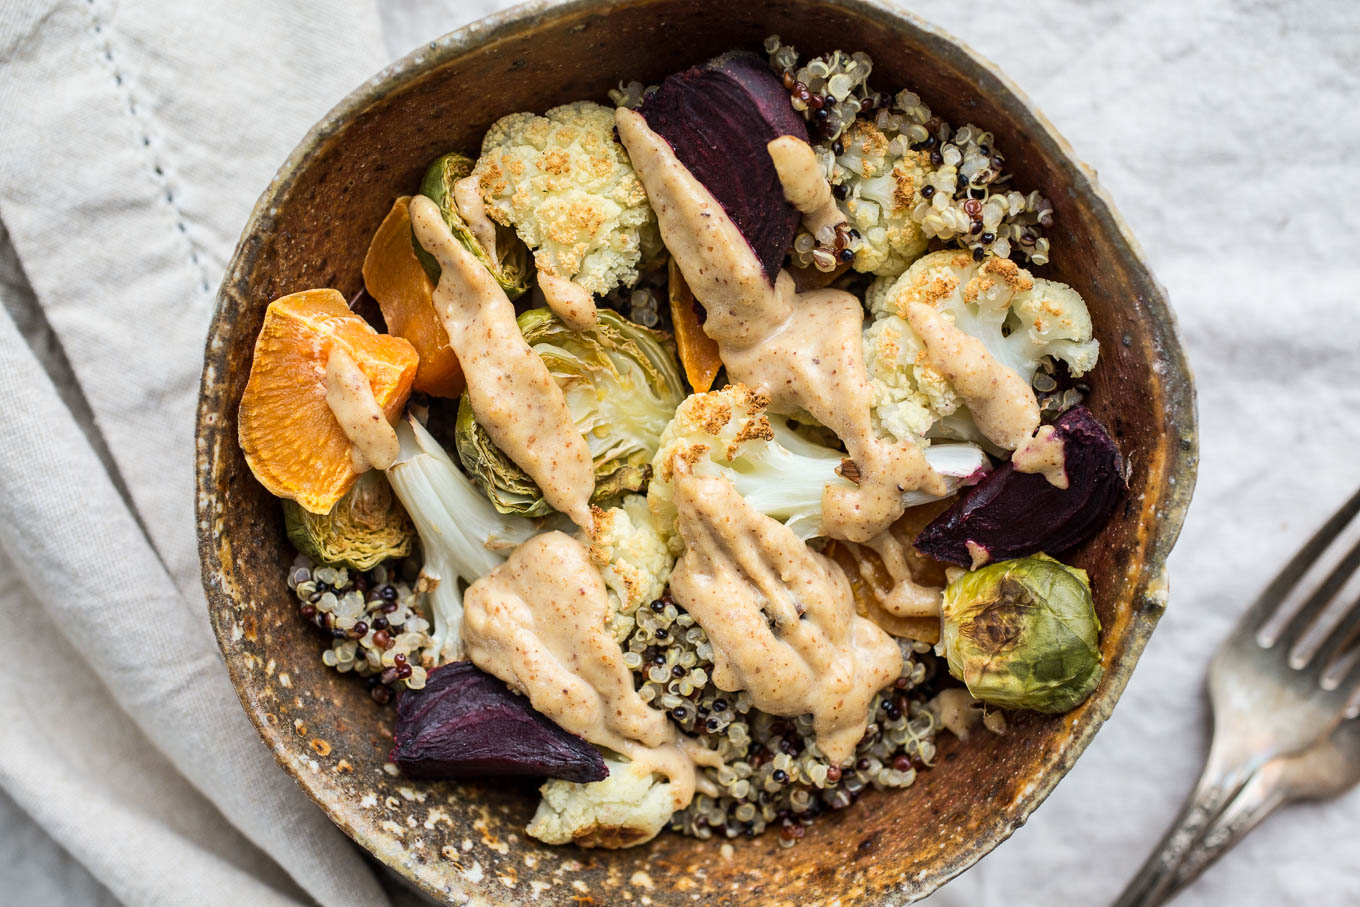 Roasted Vegetable And Quinoa Bowl With Coconut Almond Sauce Recipe